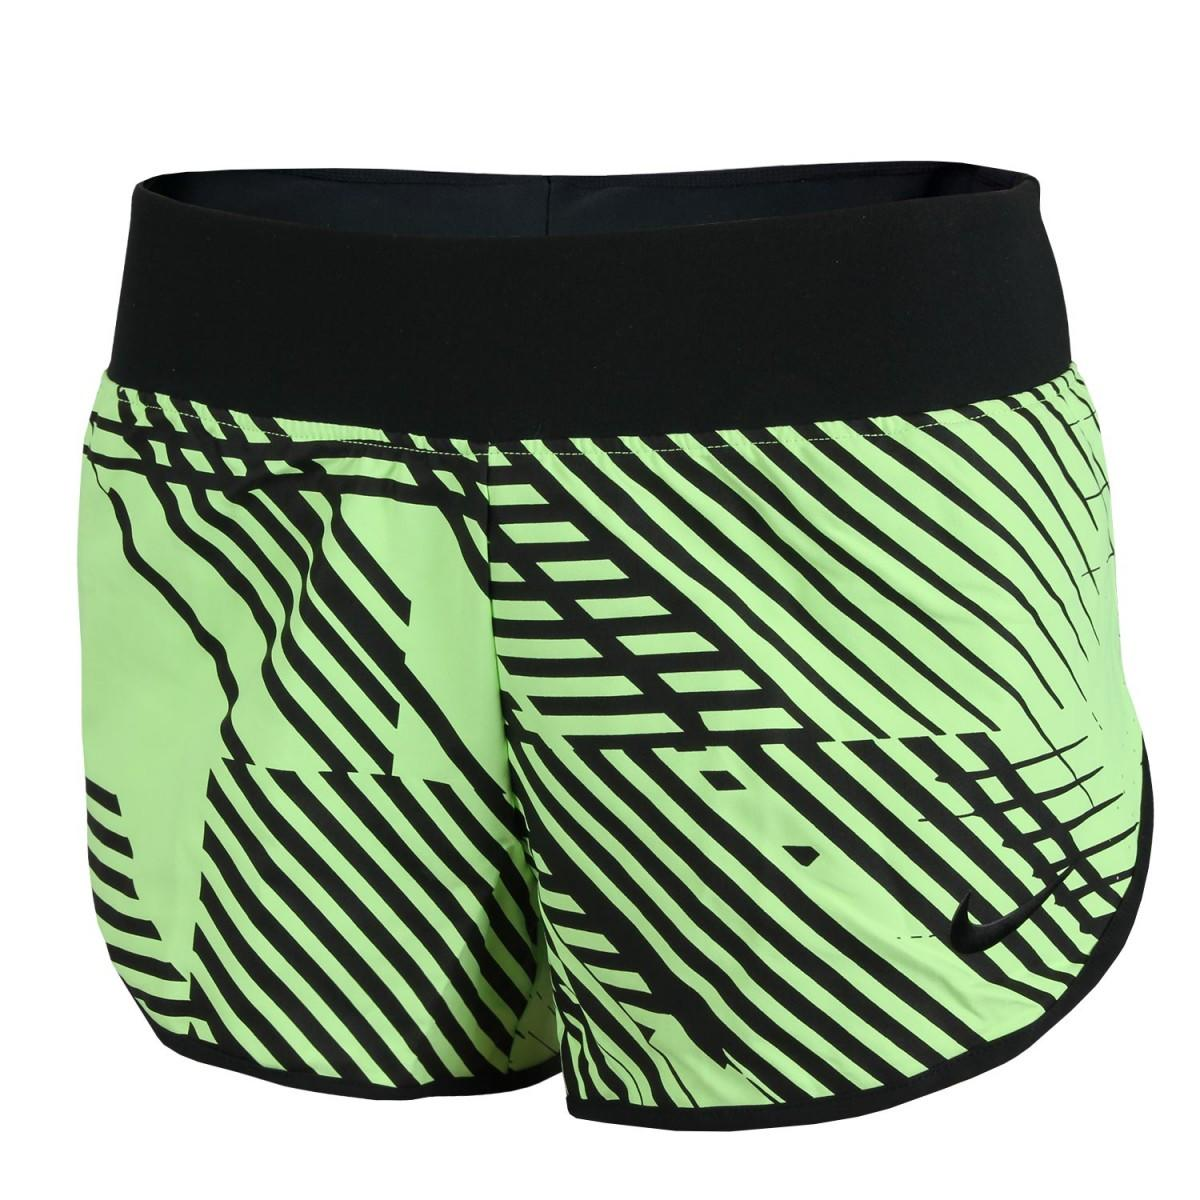 Теннисные шорты женские Nike Ace Premier Printed Shorts fluo green/black